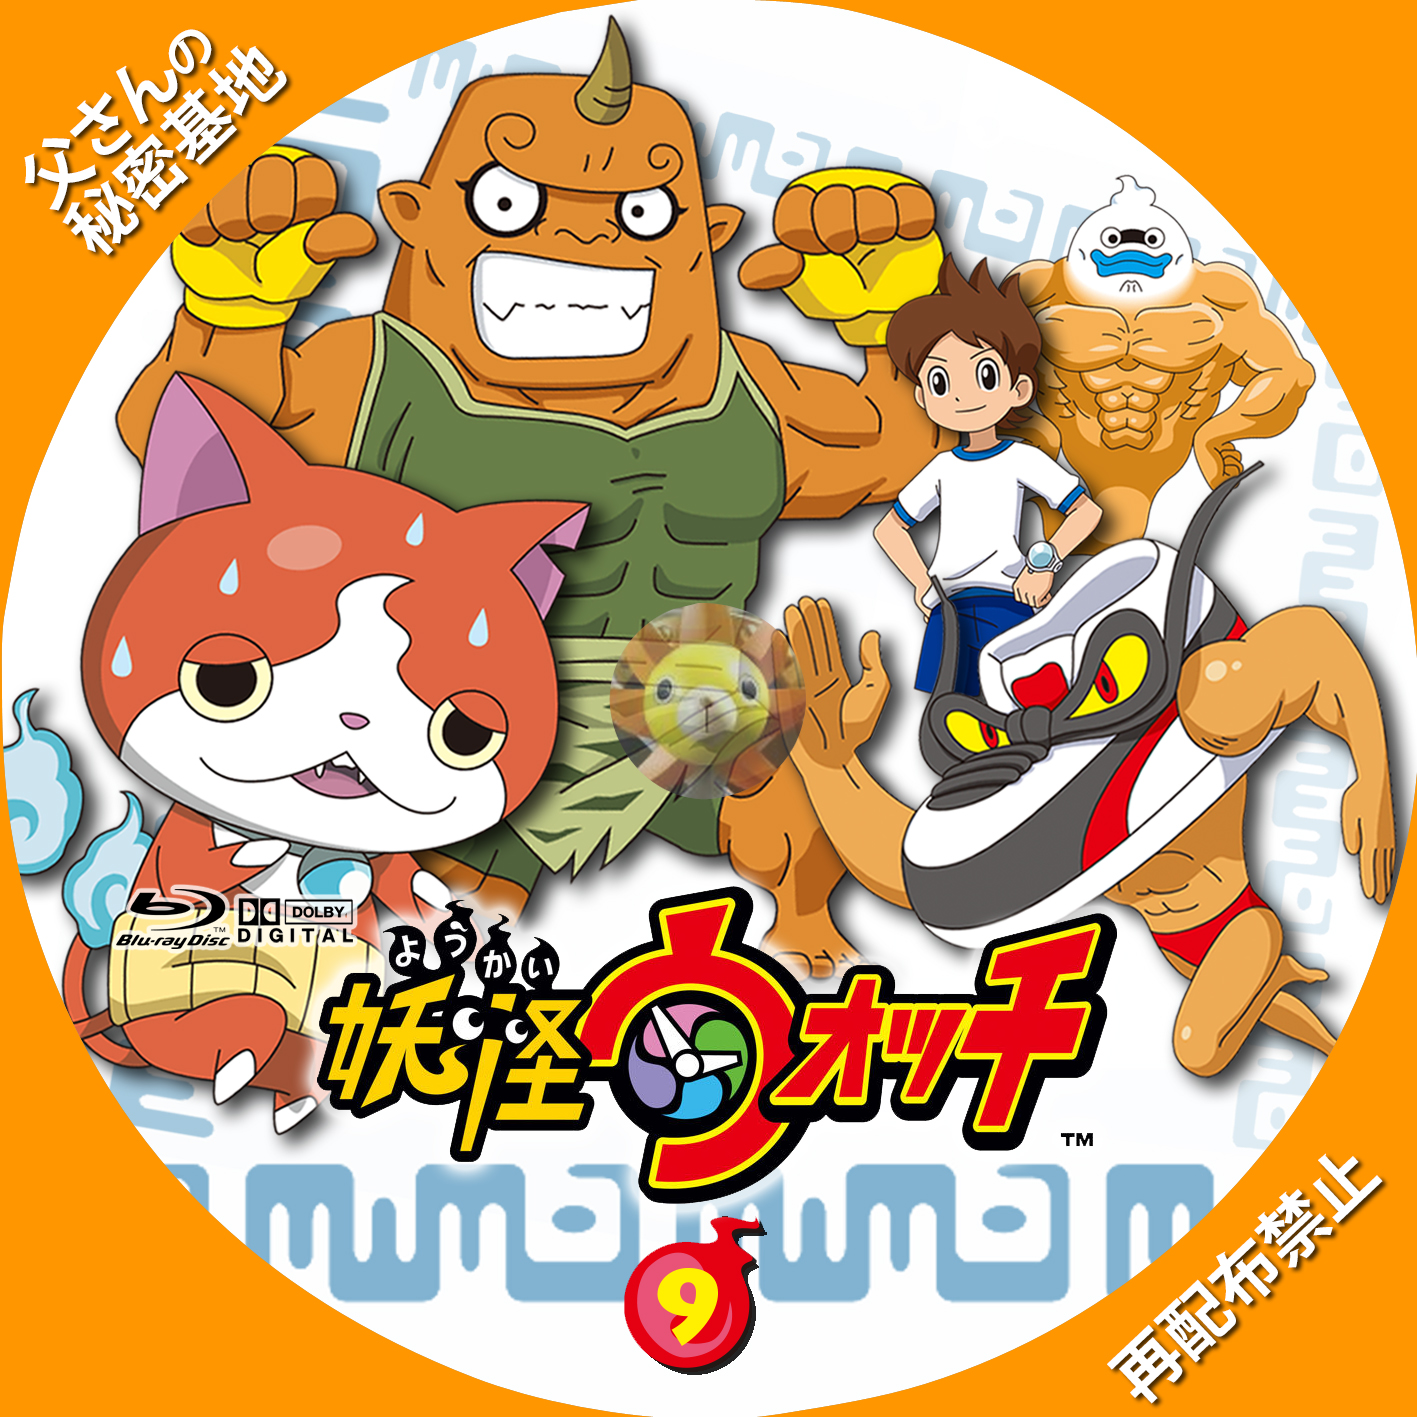 youkai-watch_09BDb.jpg